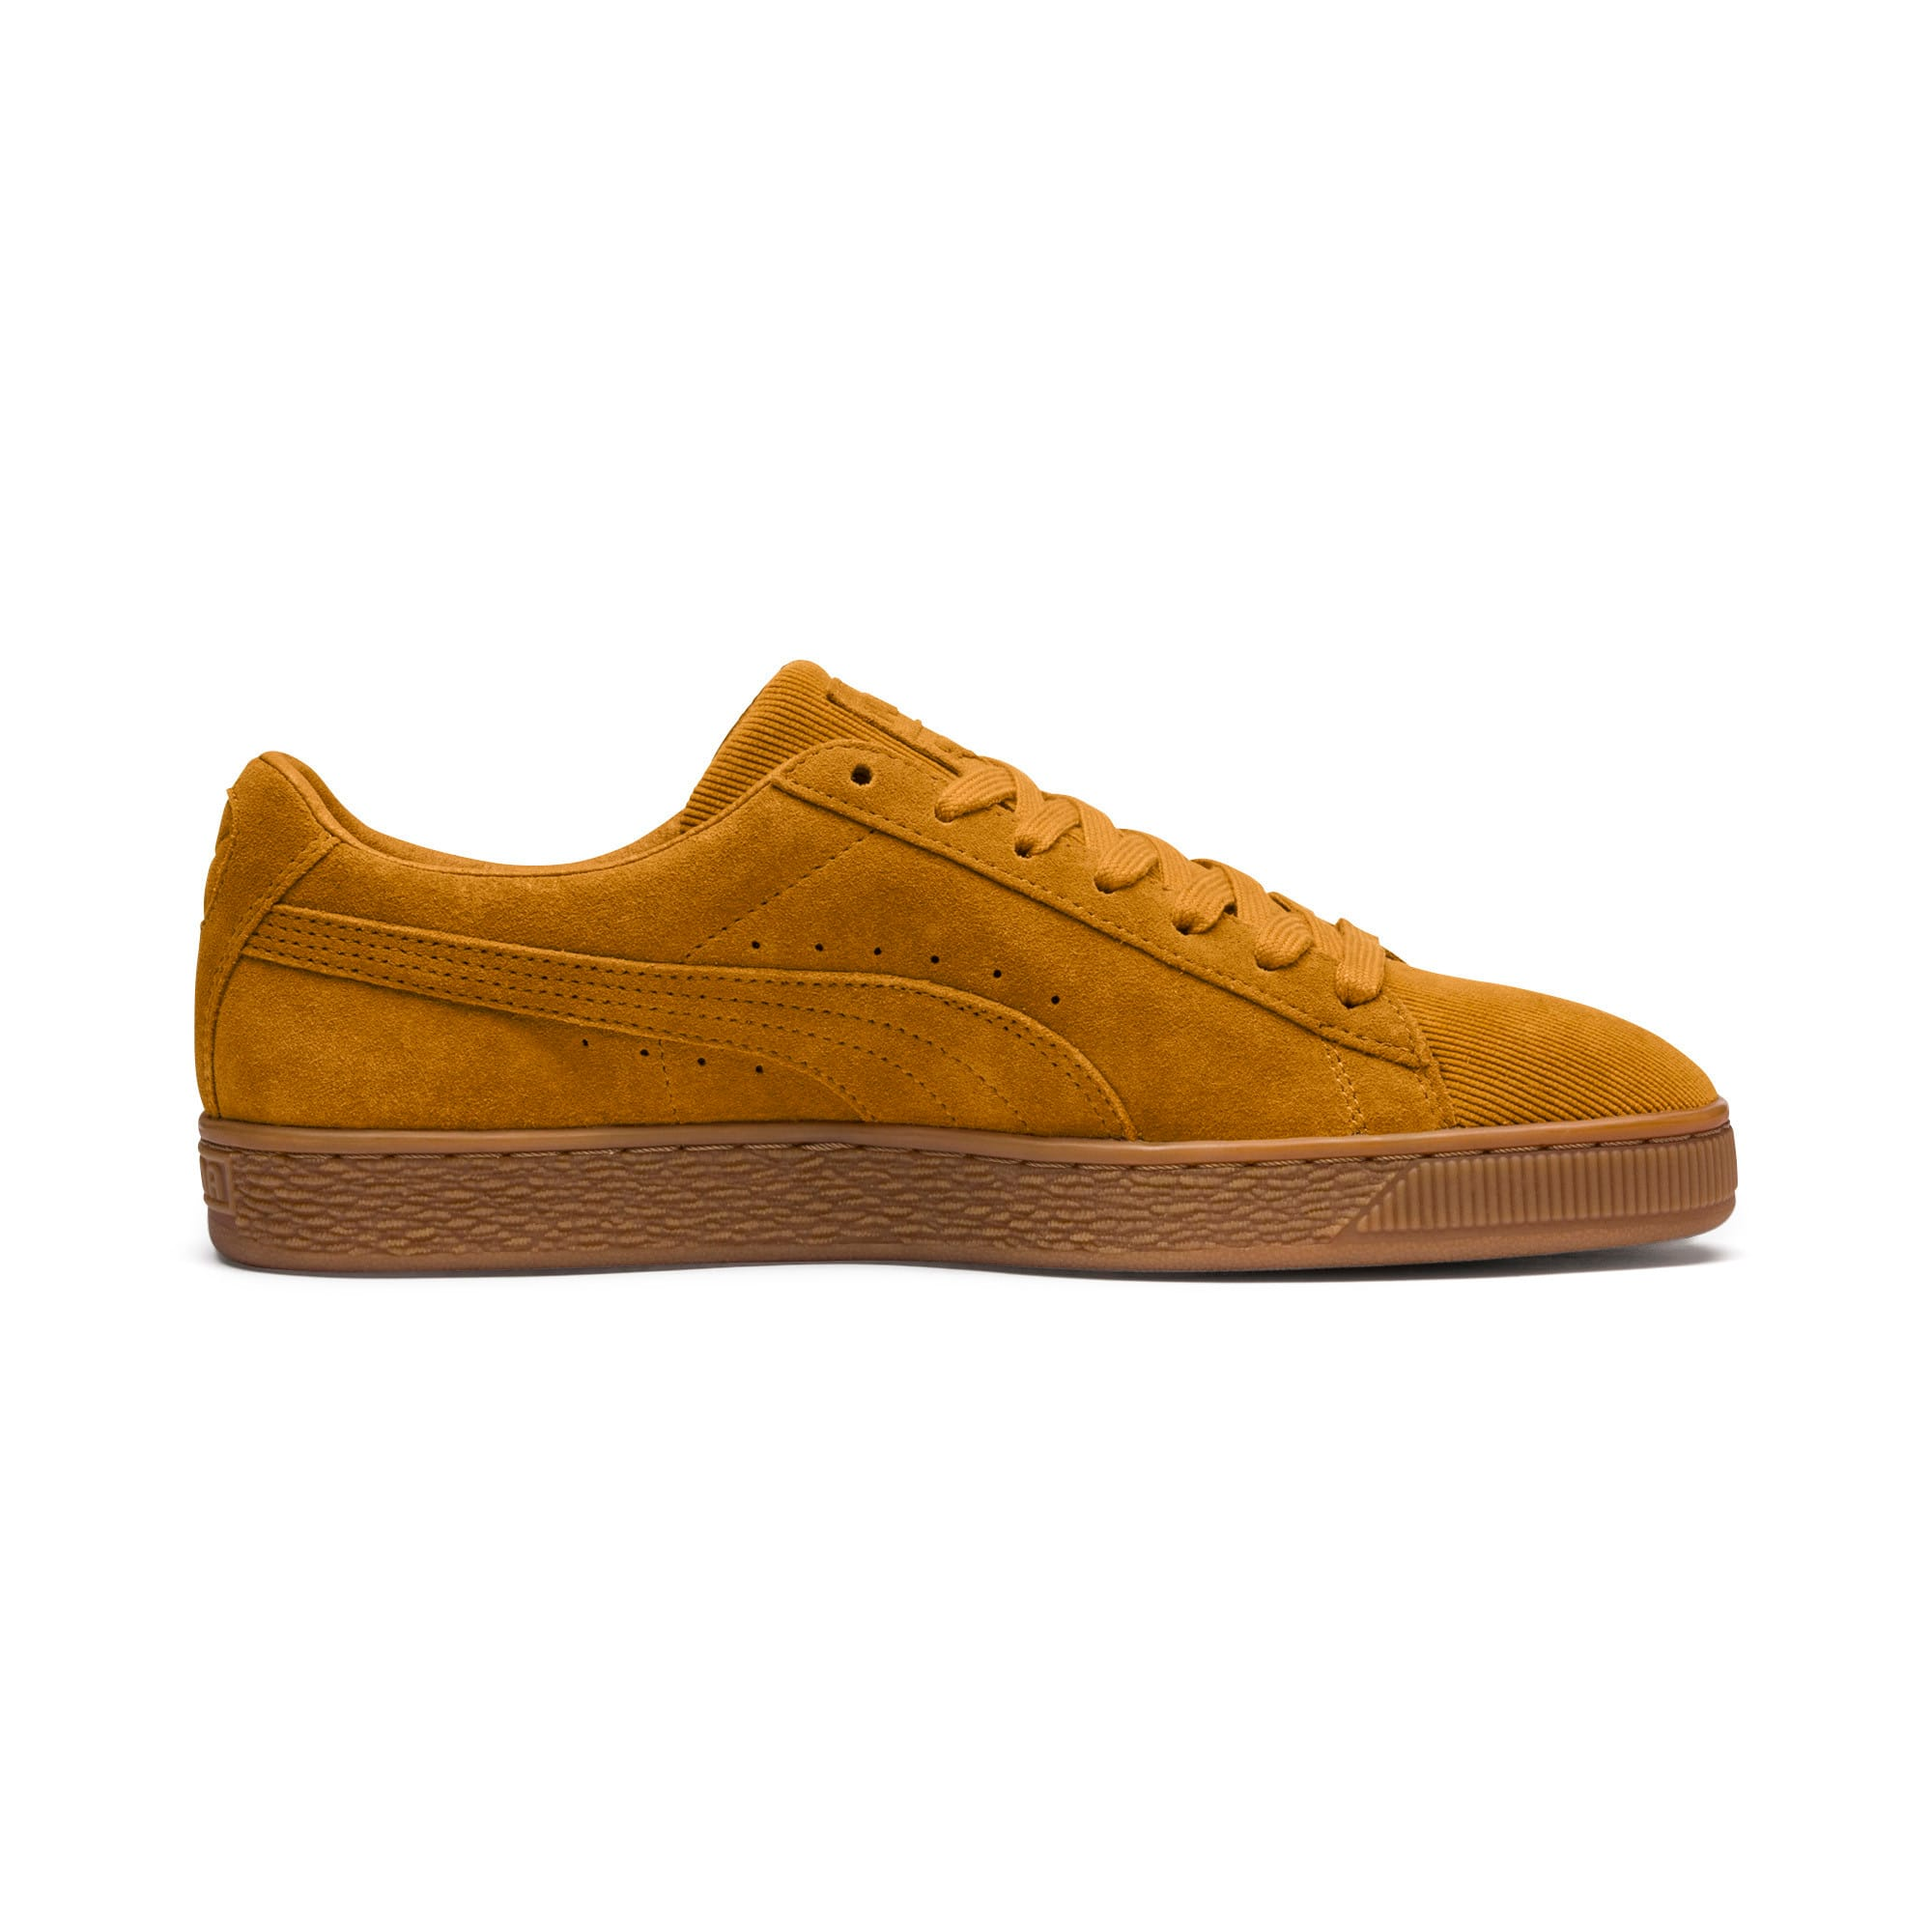 Thumbnail 5 of Suede Classic Pincord Trainers, Buckthorn Brwn-Buckthorn Brw, medium-IND